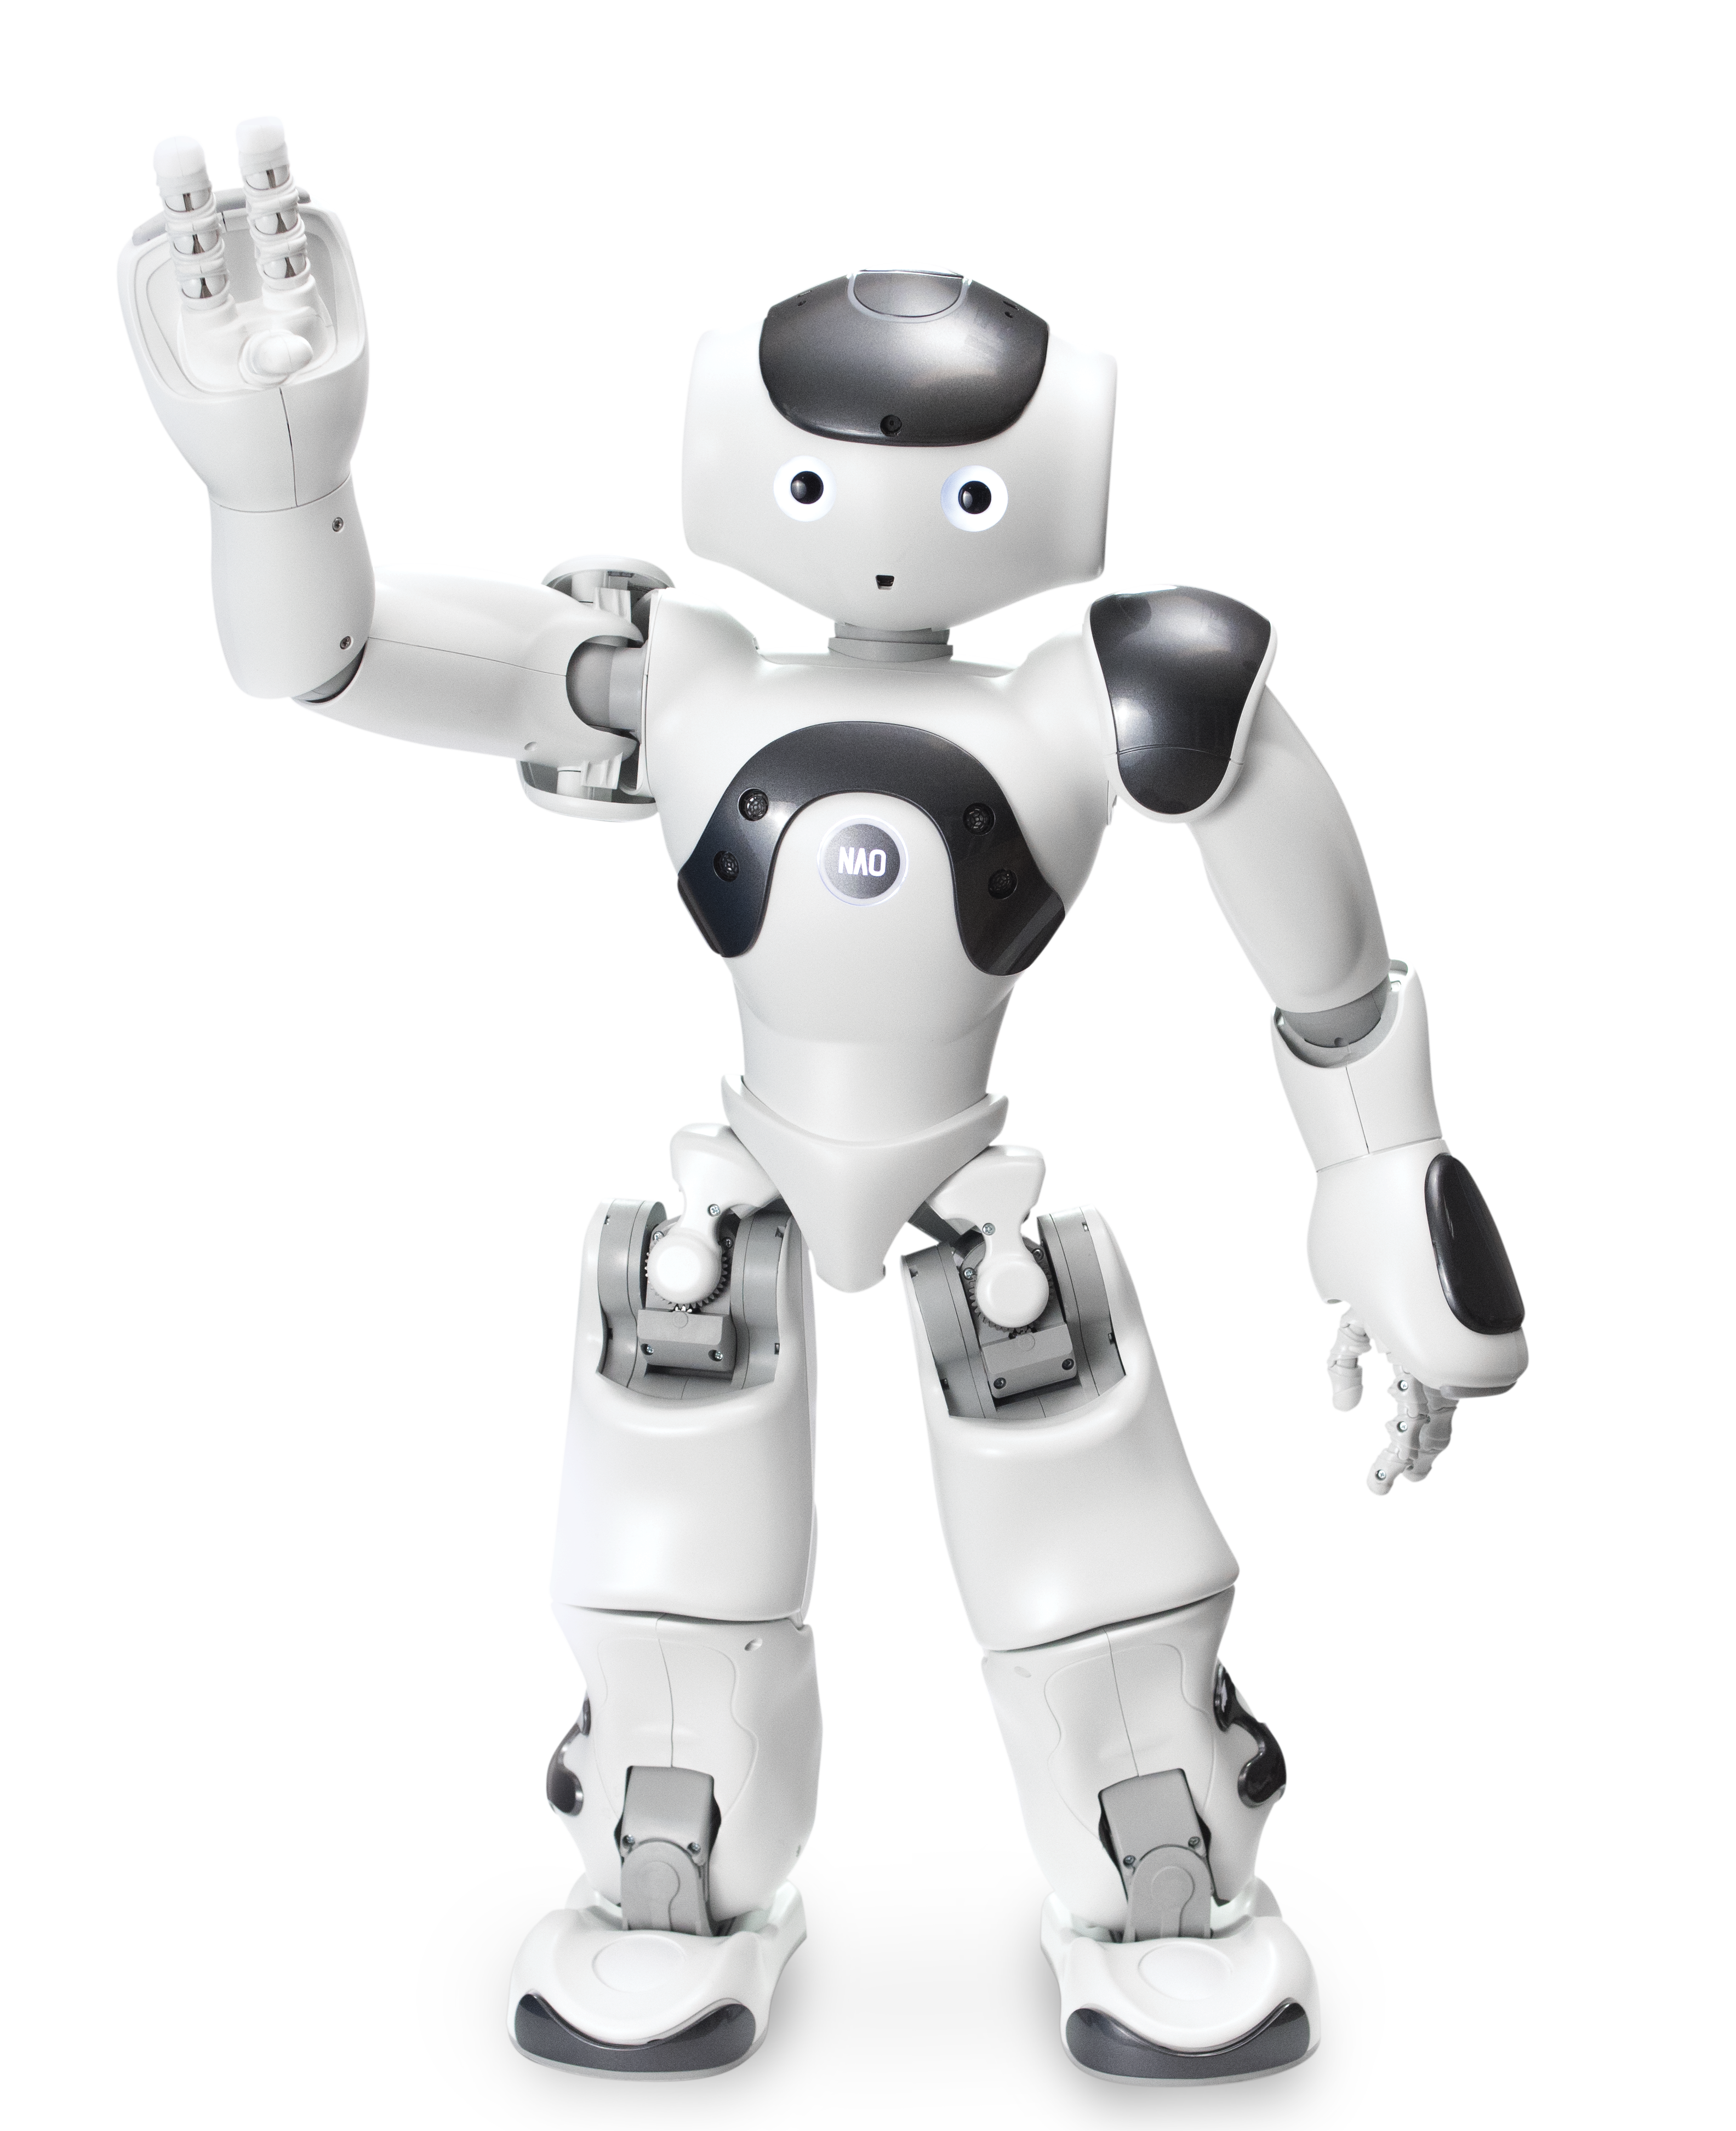 robot, nao power standard edition #18832